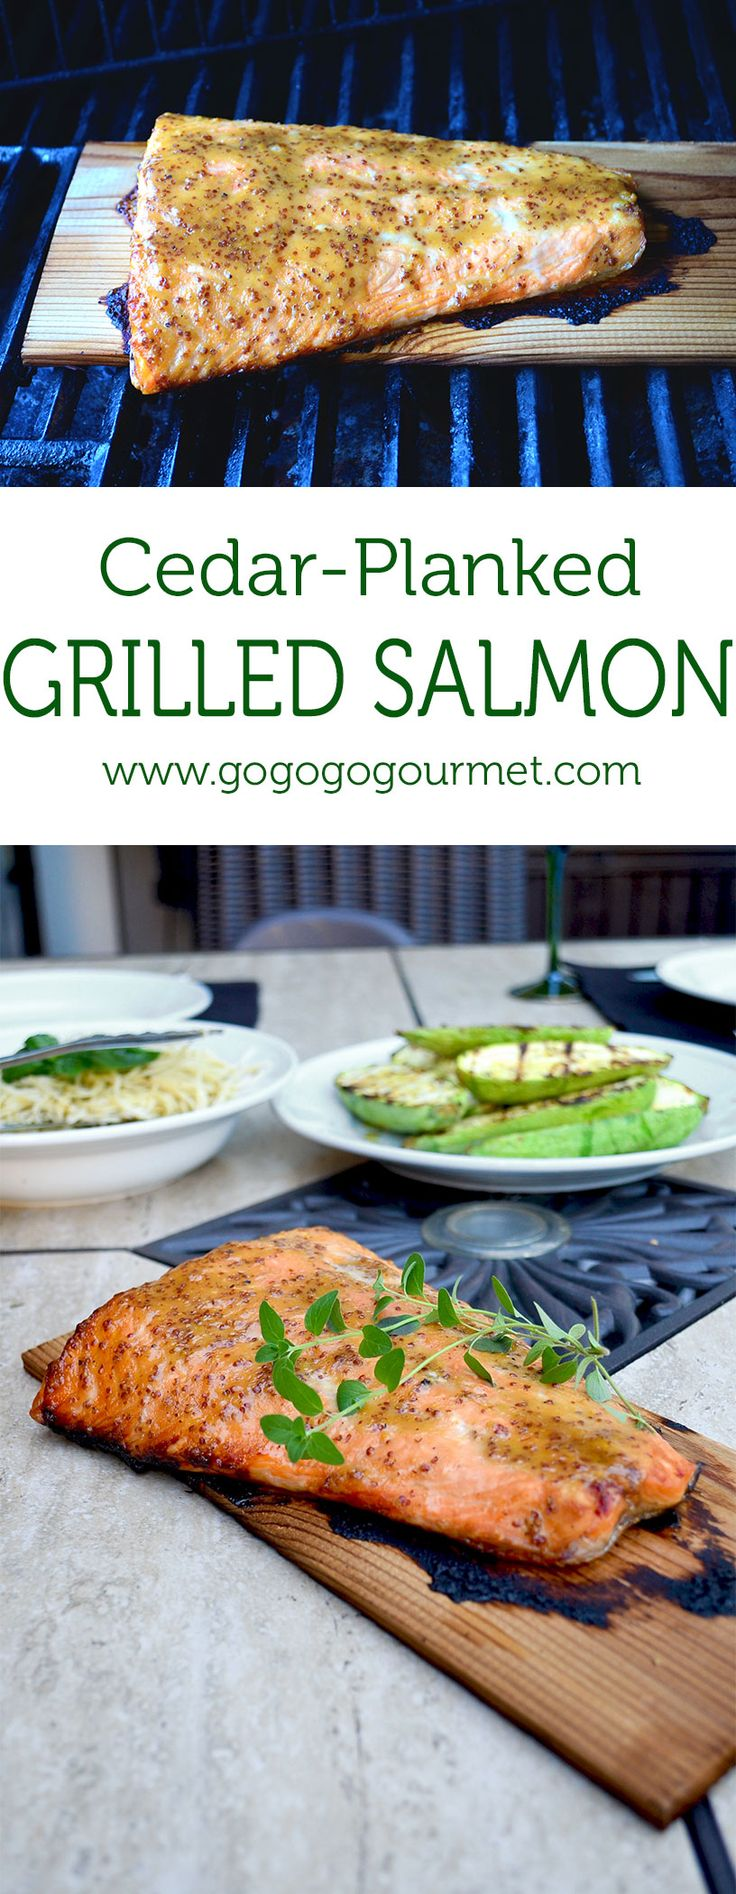 Cedar planked grilled salmon recipe grilled salmon for Grilling fish on cedar plank